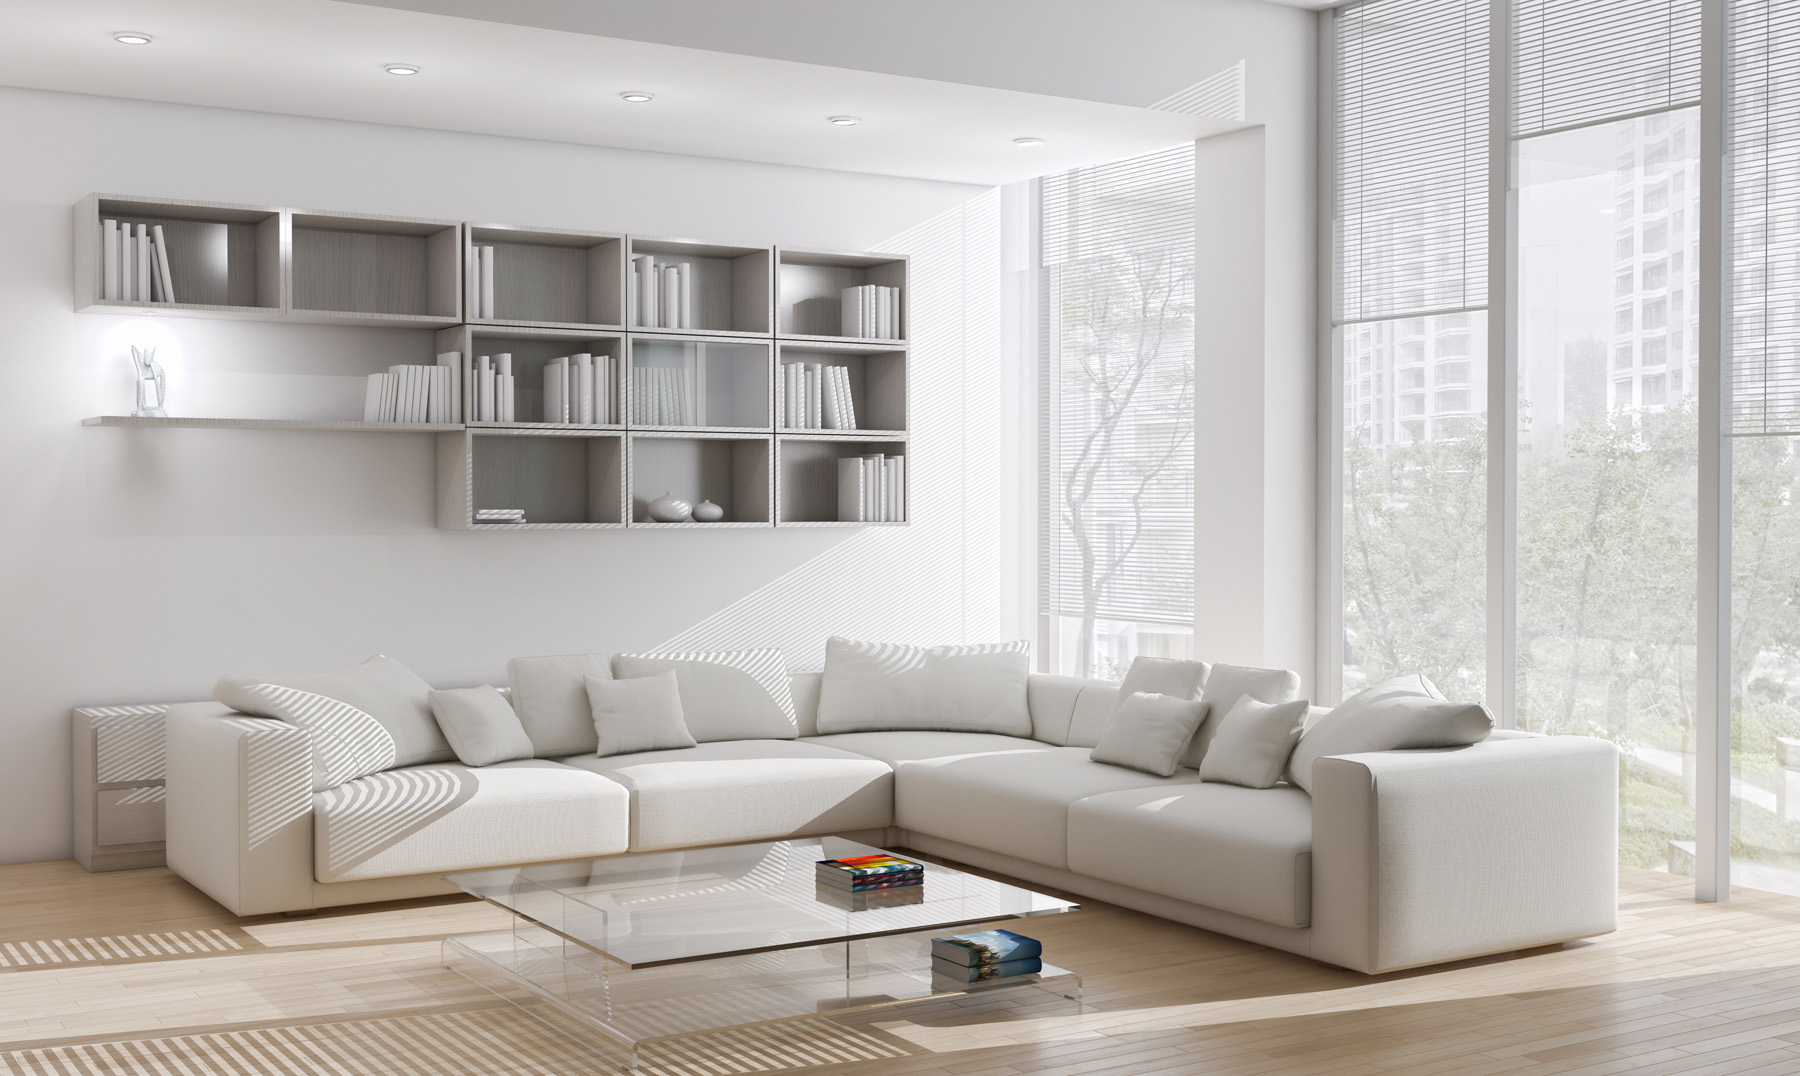 Room sofa and wall shelves 51262